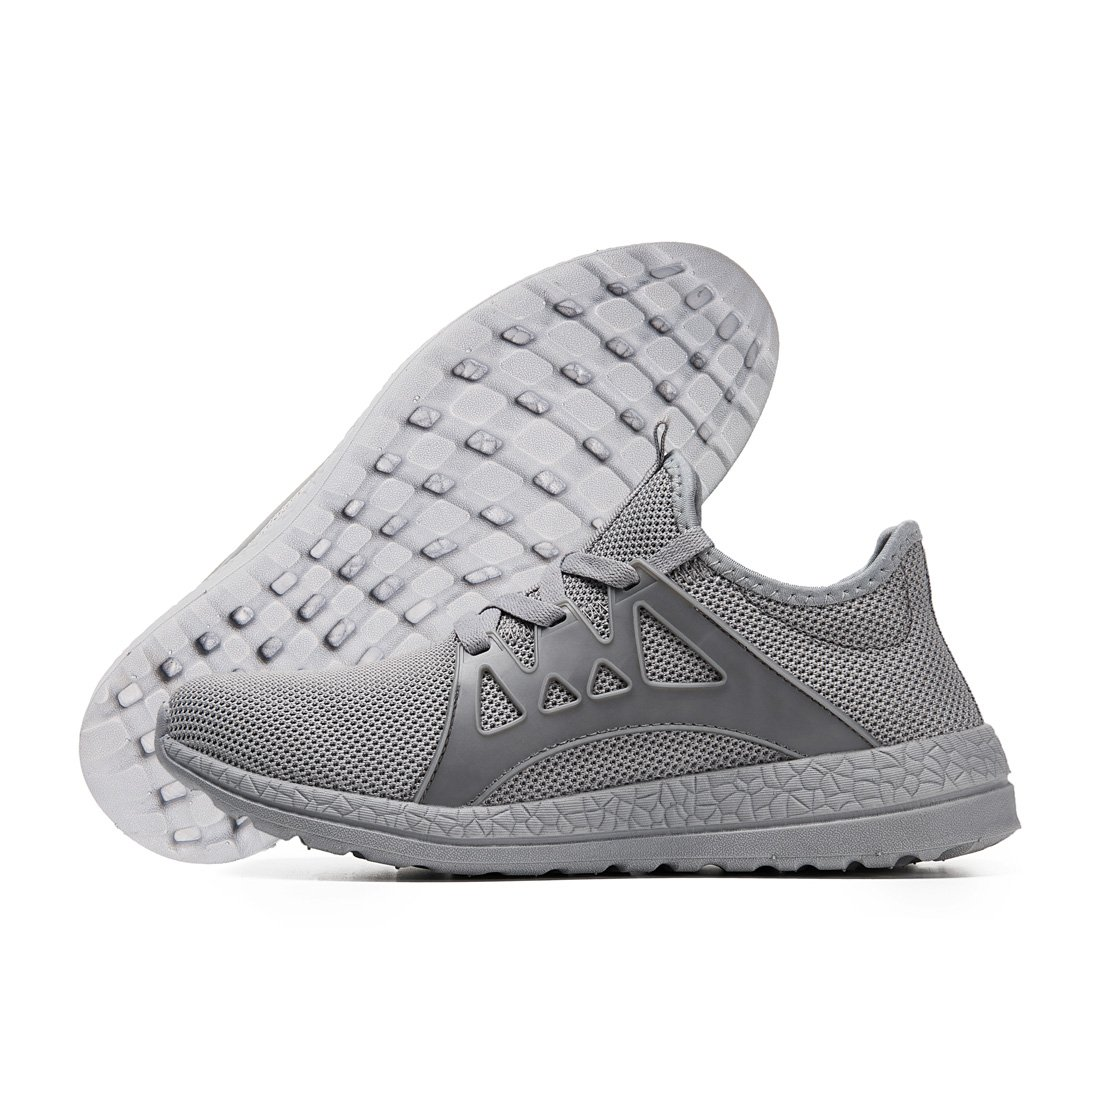 Casual Breathable Sneakers for Women Men Air Cushion Knit Slip On Walking Shoes Athletic Shoes for Unisex Lovers